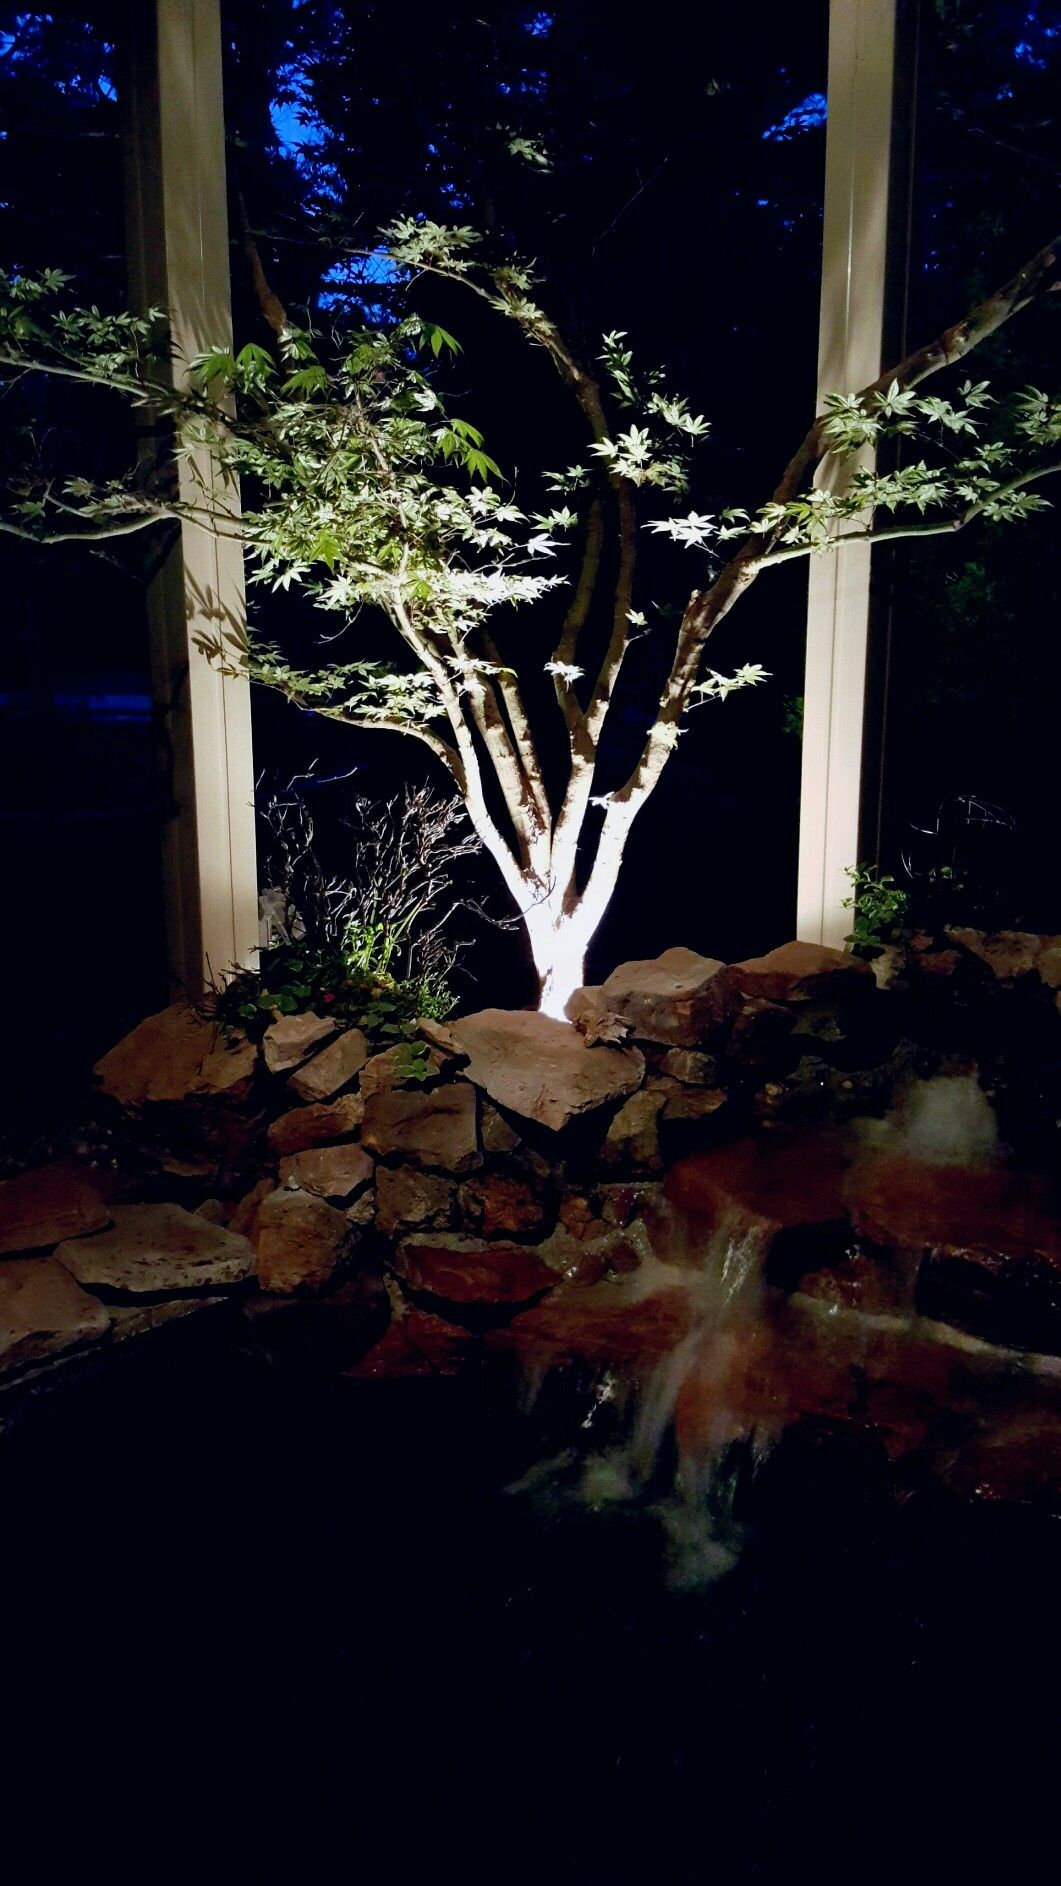 Garden landscape night  Night lighting  Outdoor  Pinterest  Exterior wall light and Gardens